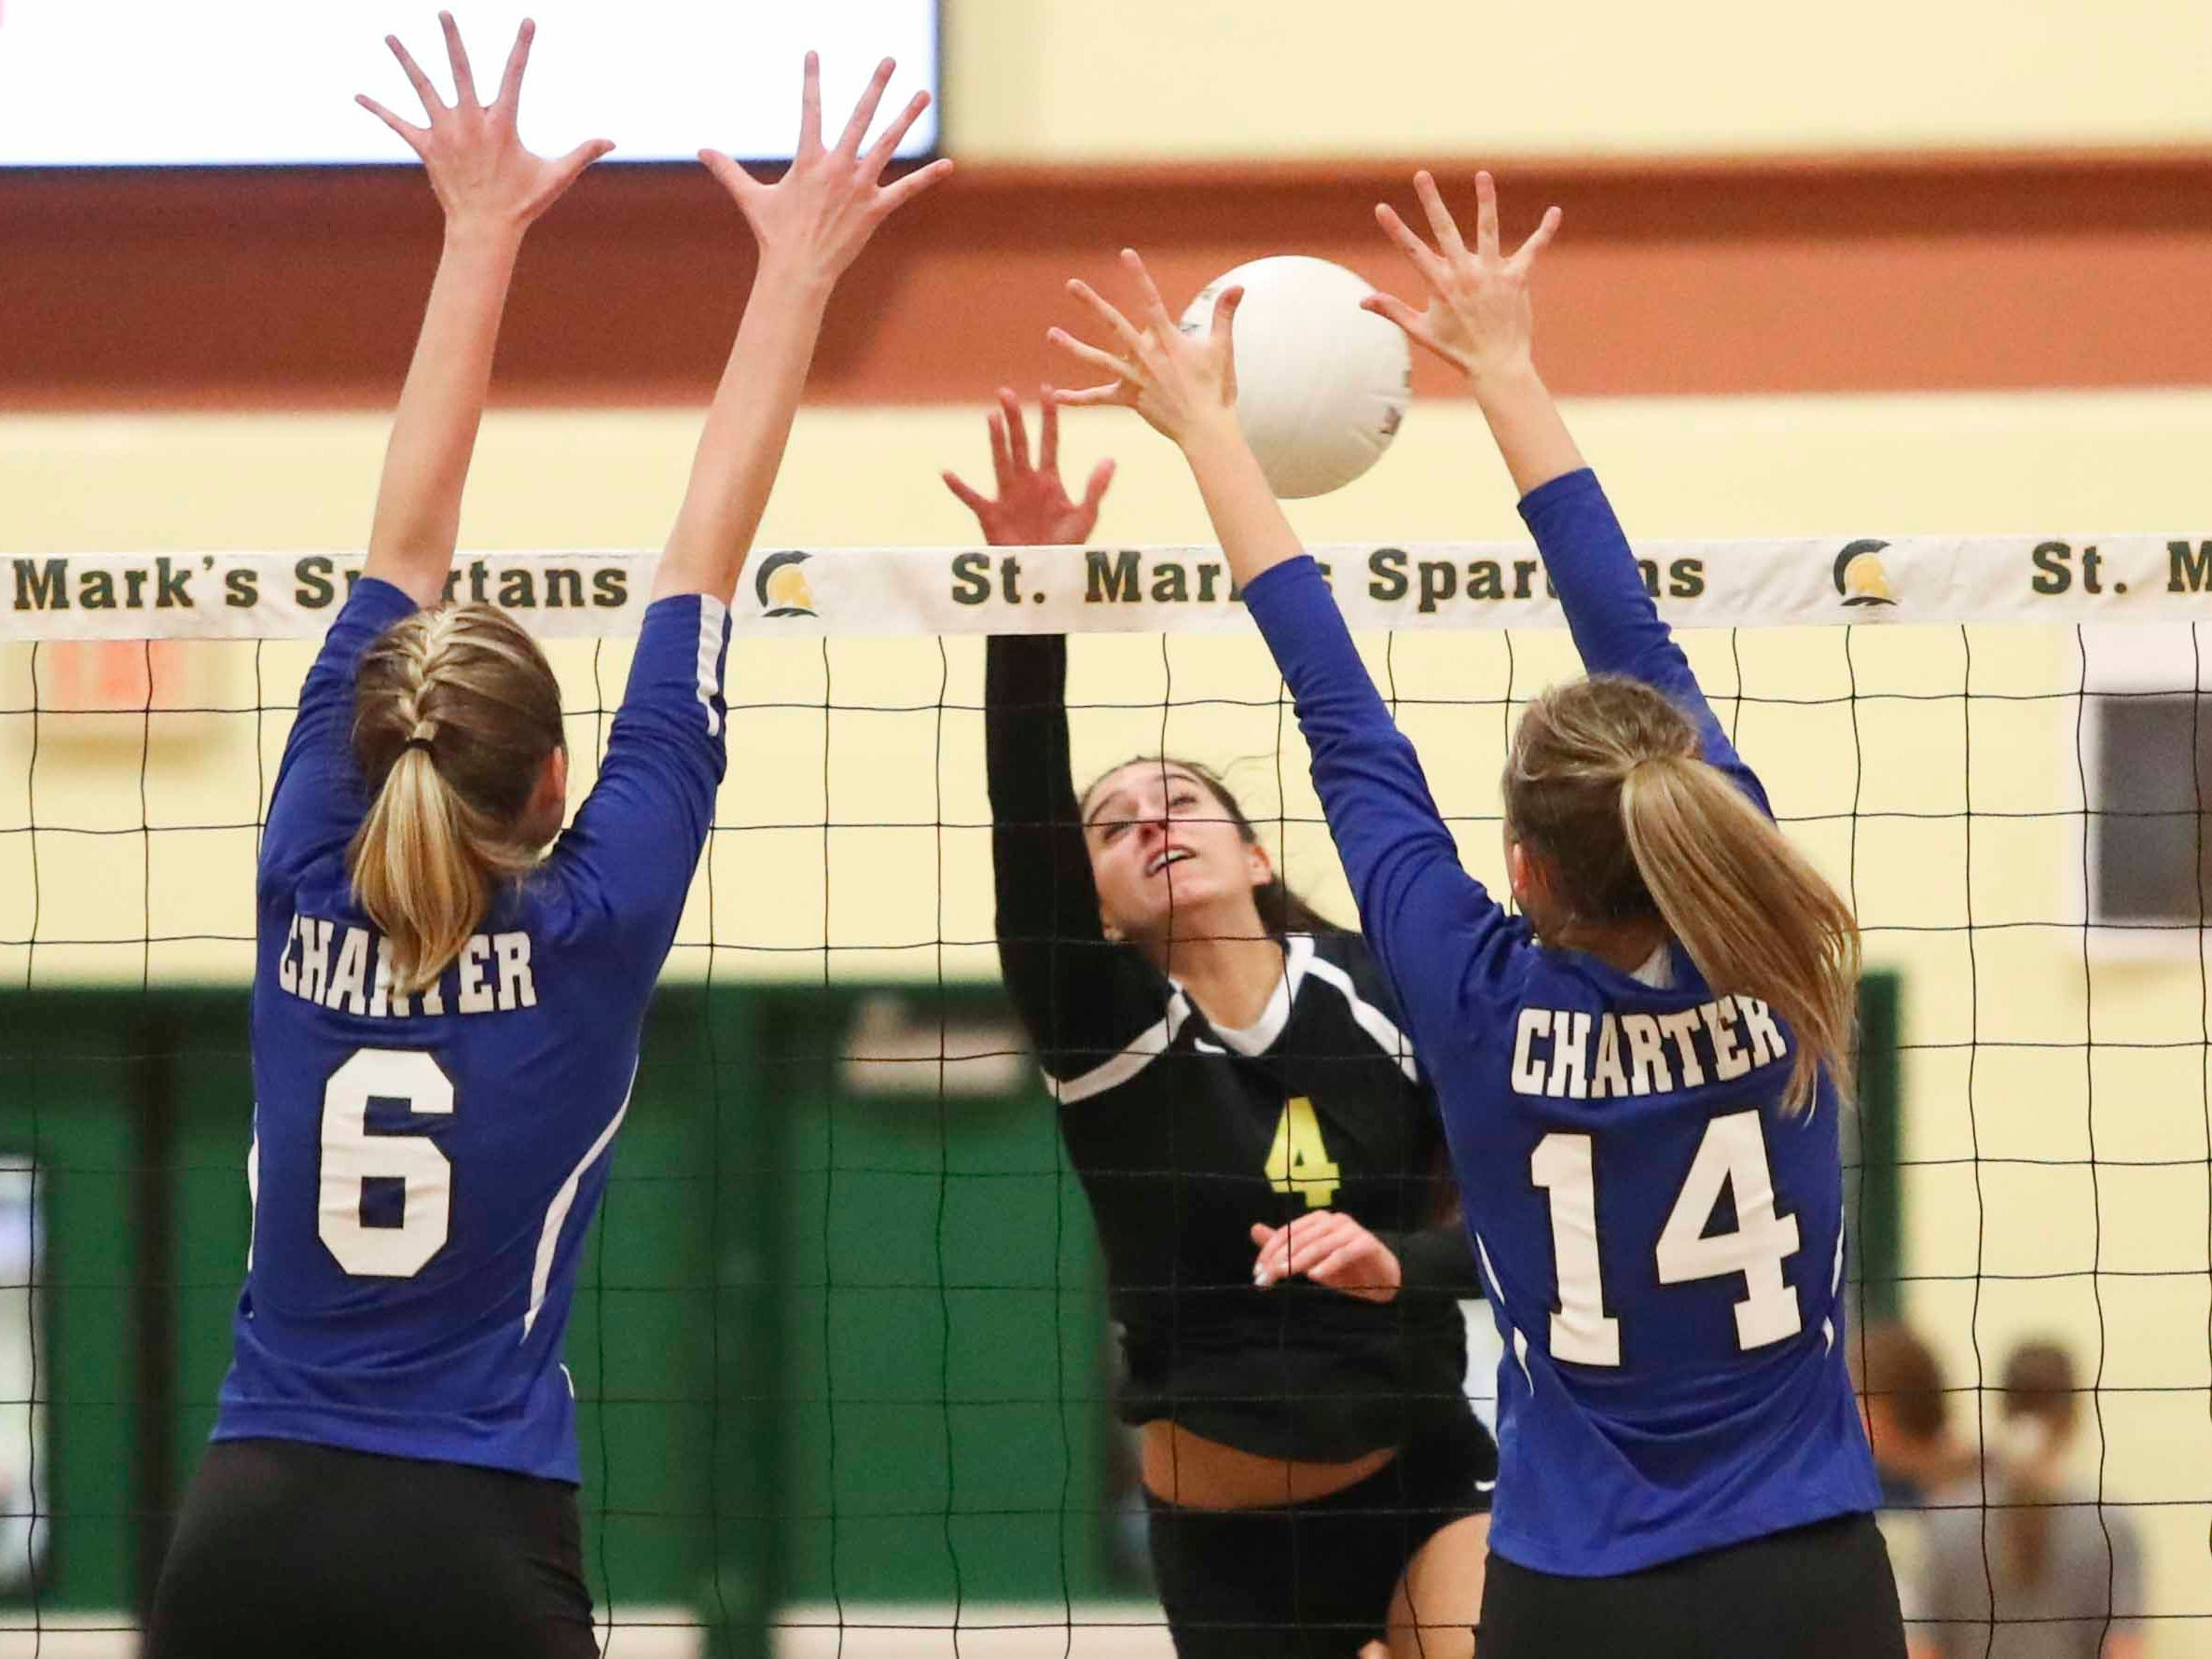 Padua's Jacqueline Camponelli (4) tries to hit past Charter School of Wilmington's Madeline Matheny (6) and Danielle Waltz as the Force advances to Monday's final in the DIAA state tournament Thursday at St. Mark's High School.